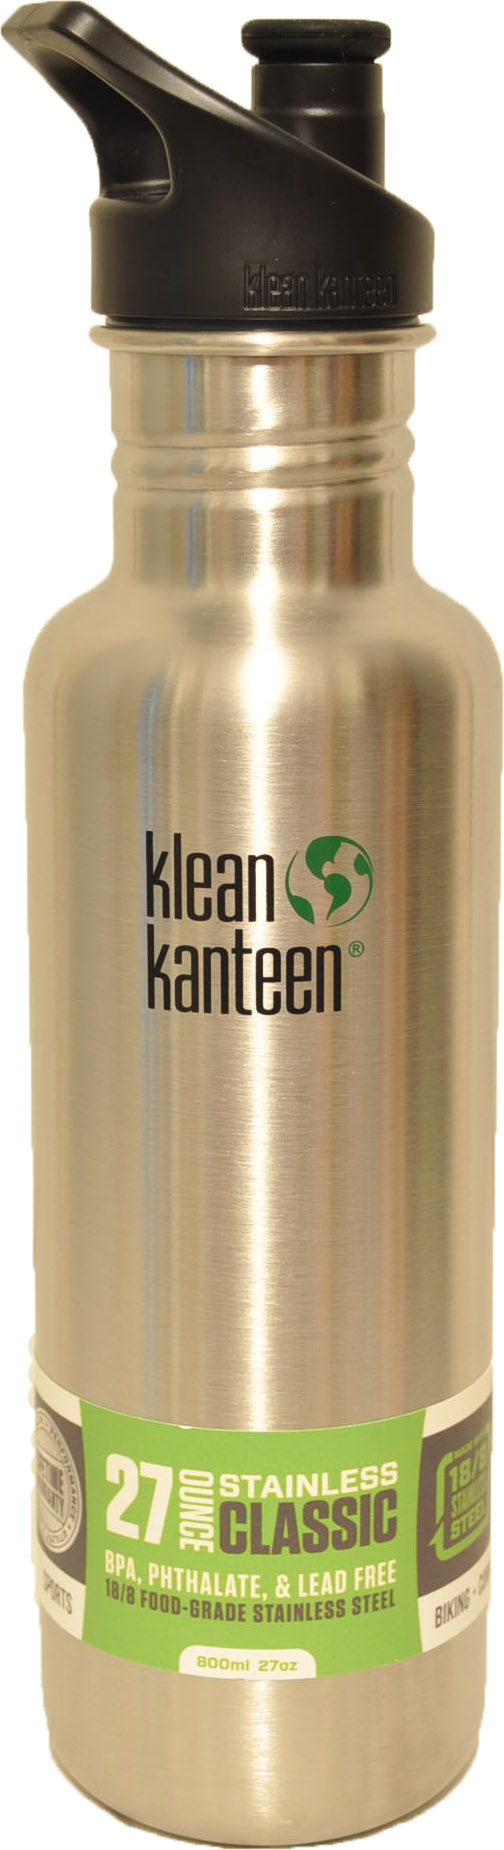 27oz Classic w/sports cap- Stainless